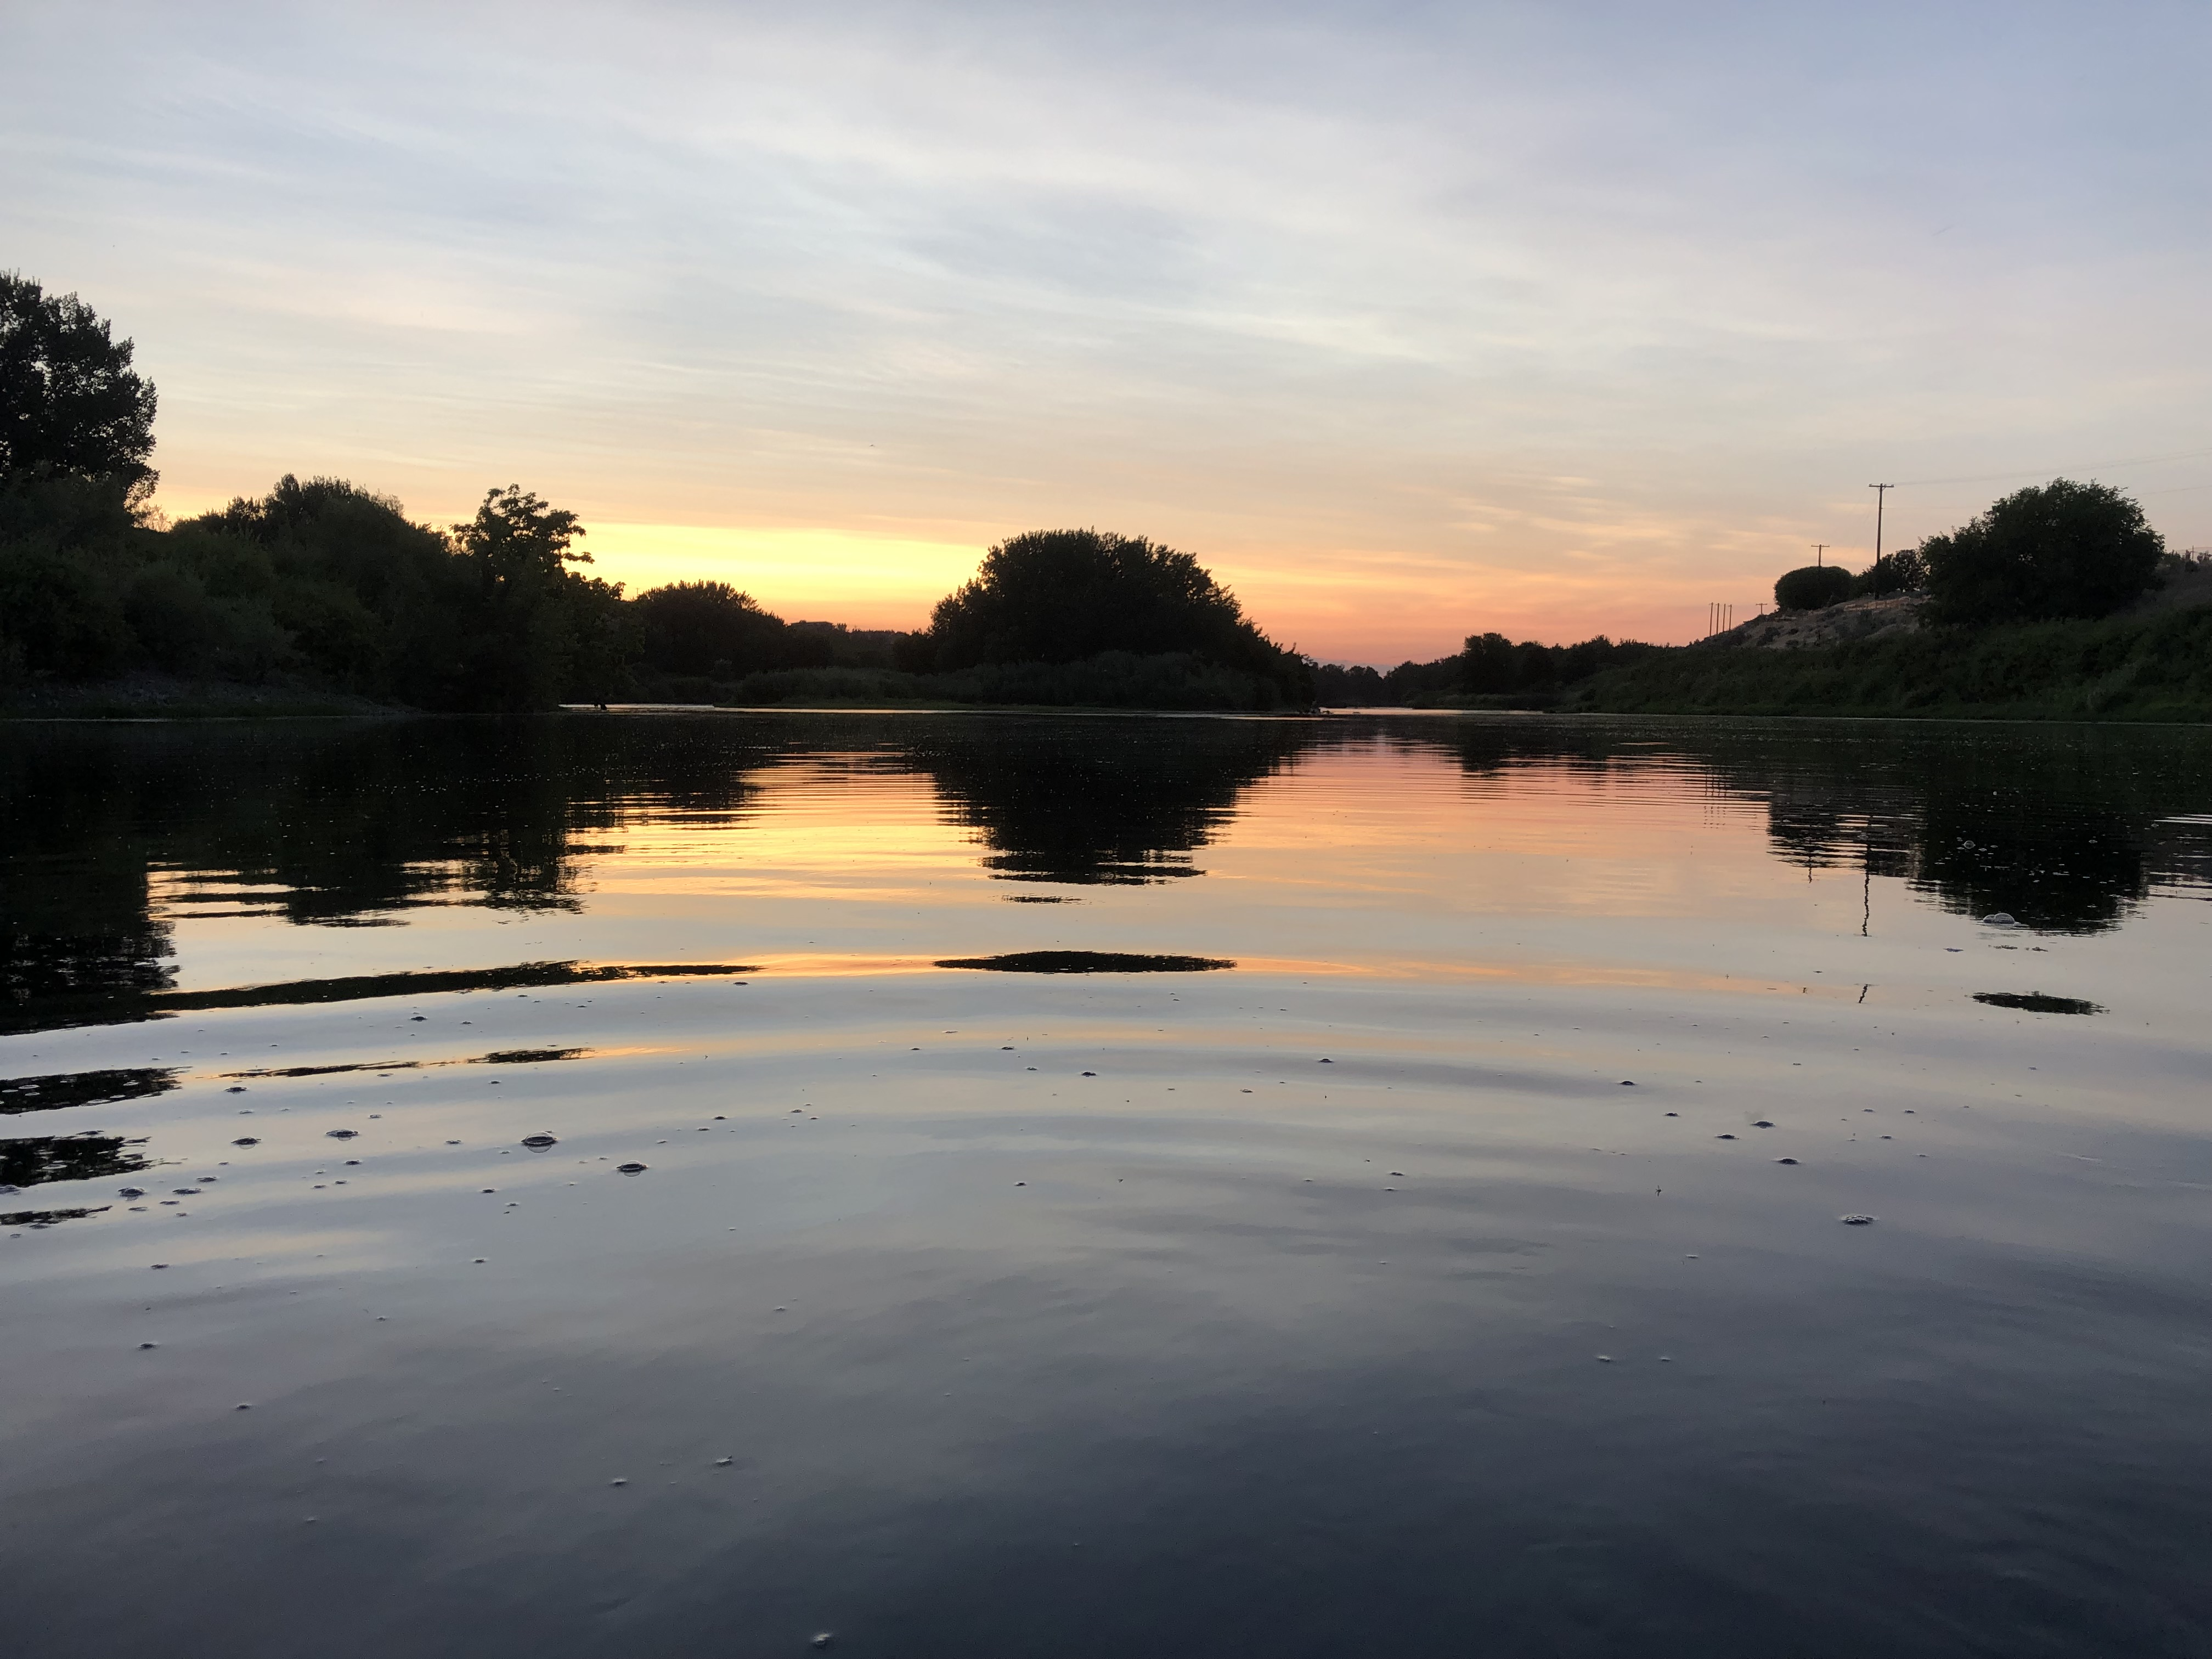 Photo of the river at sunset